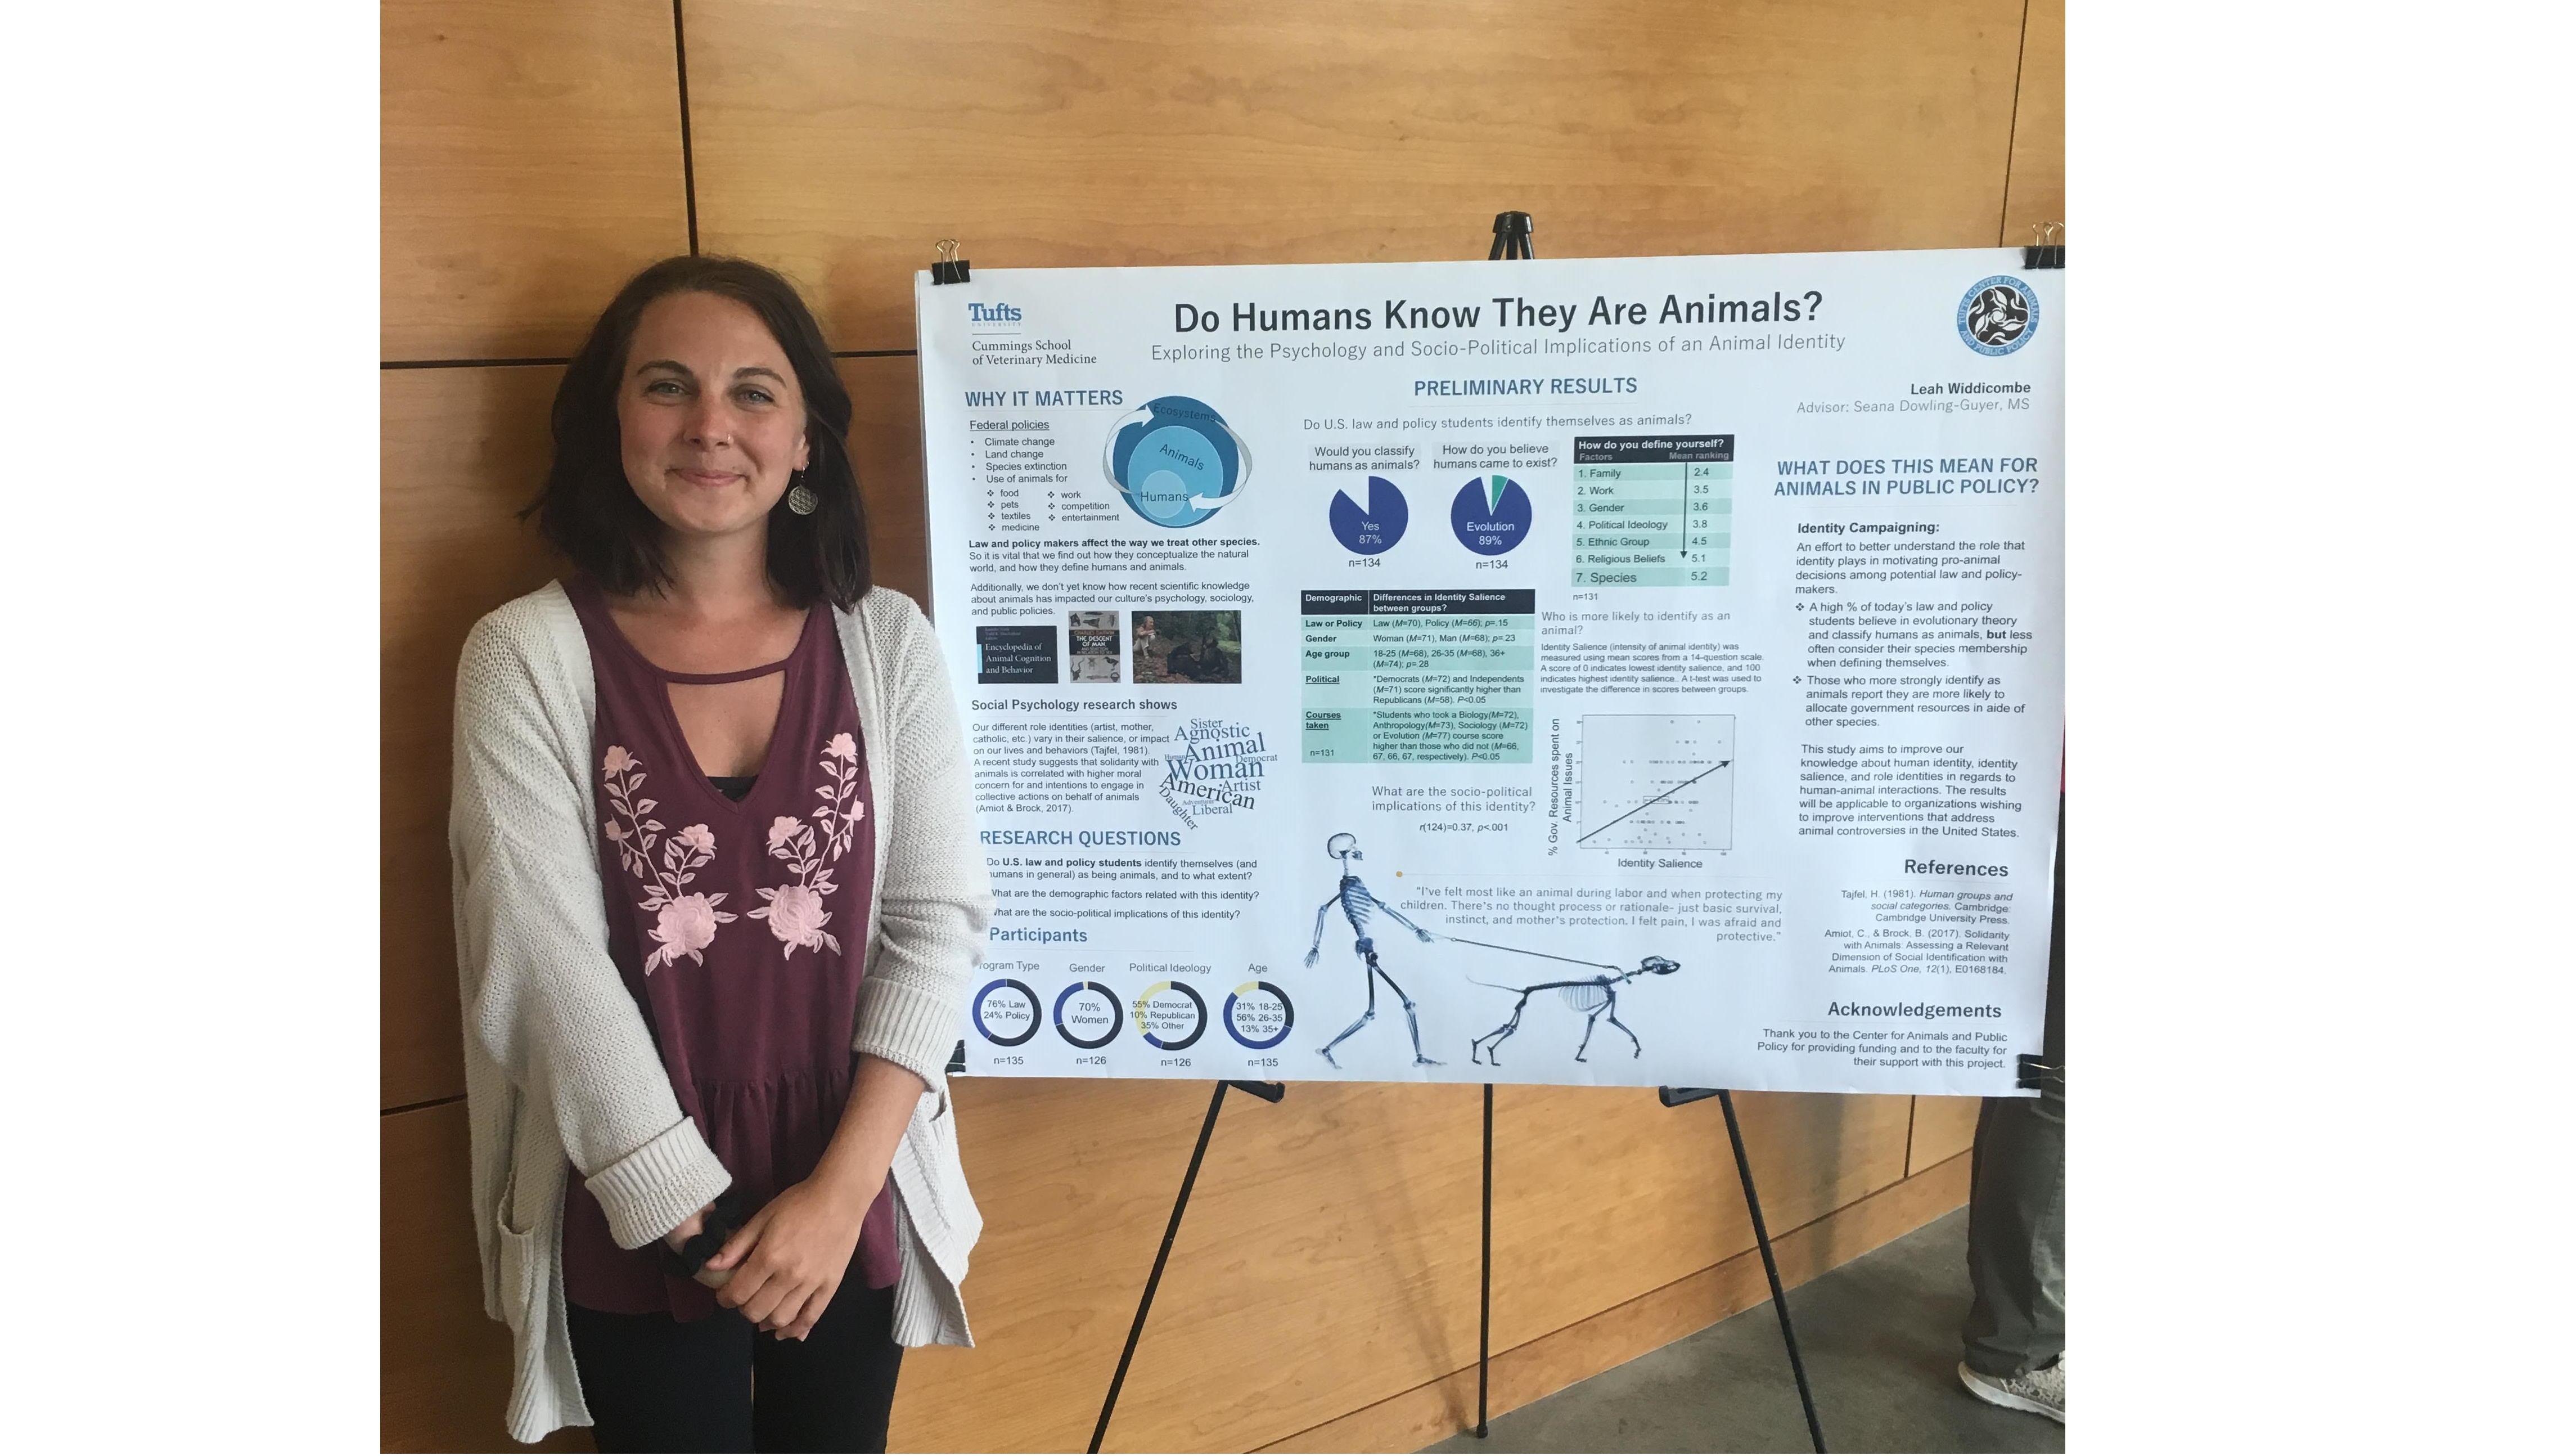 Do Humans Know They Are Animals? Exploring the Psychology and Behaviors Associated with an Animal Identity